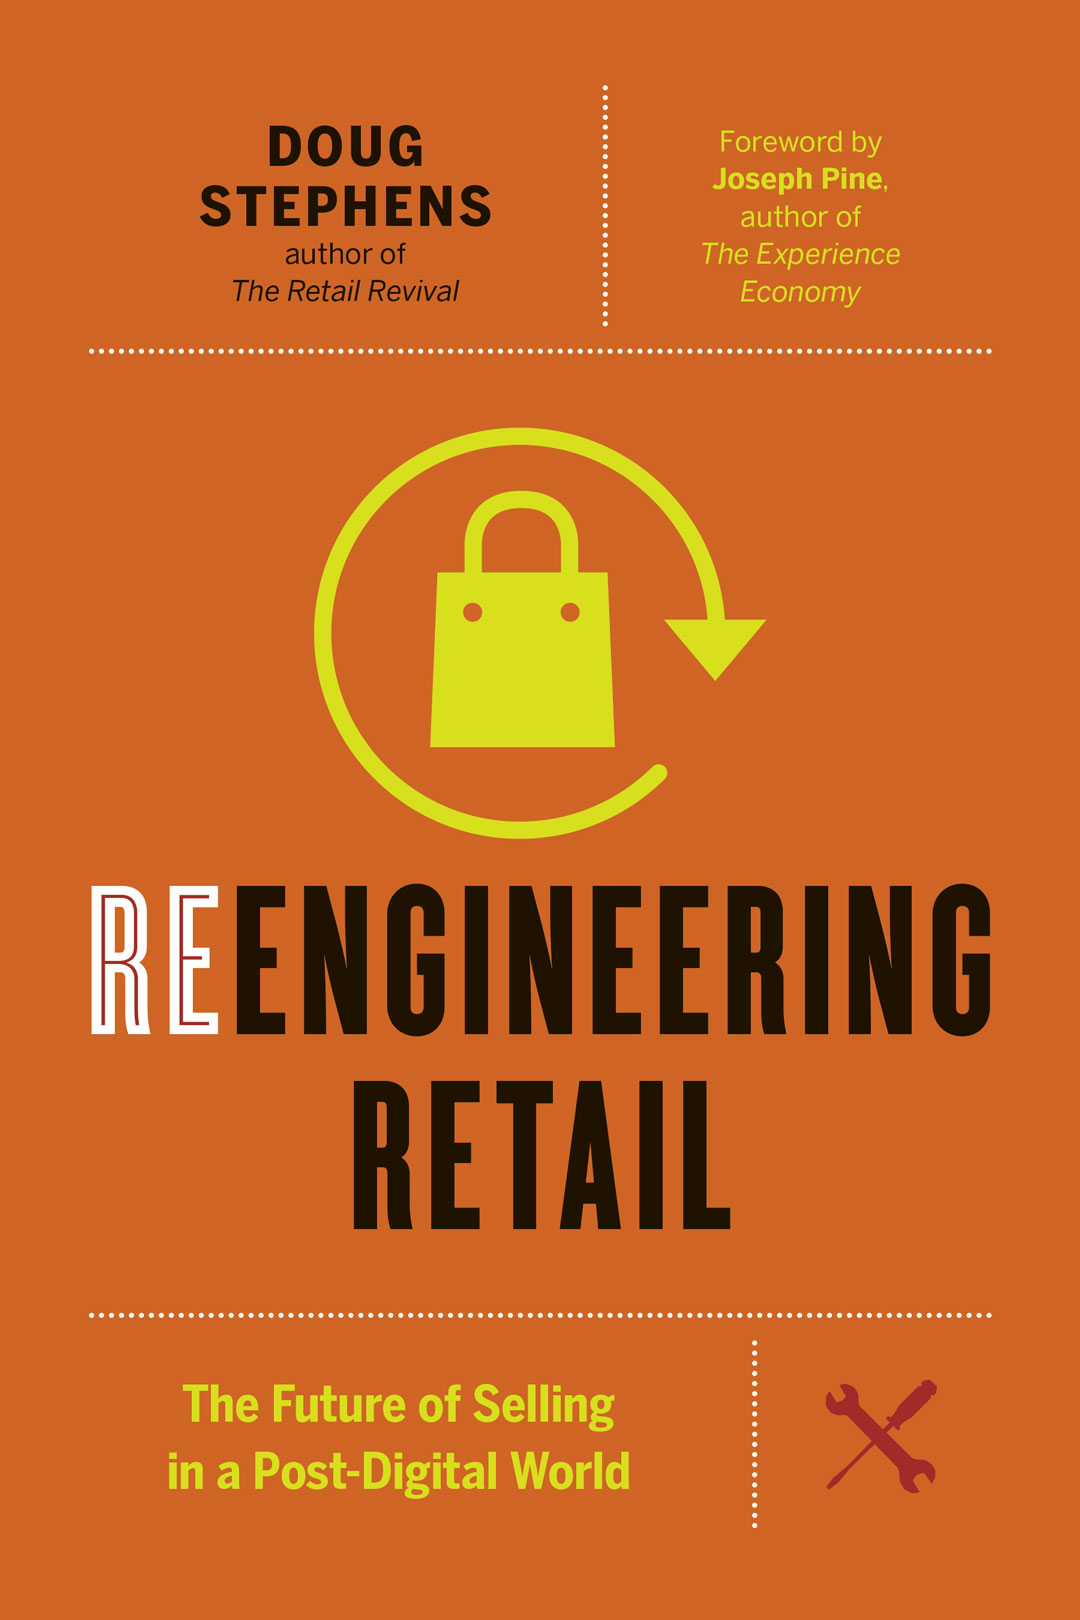 Re-Engineering retail